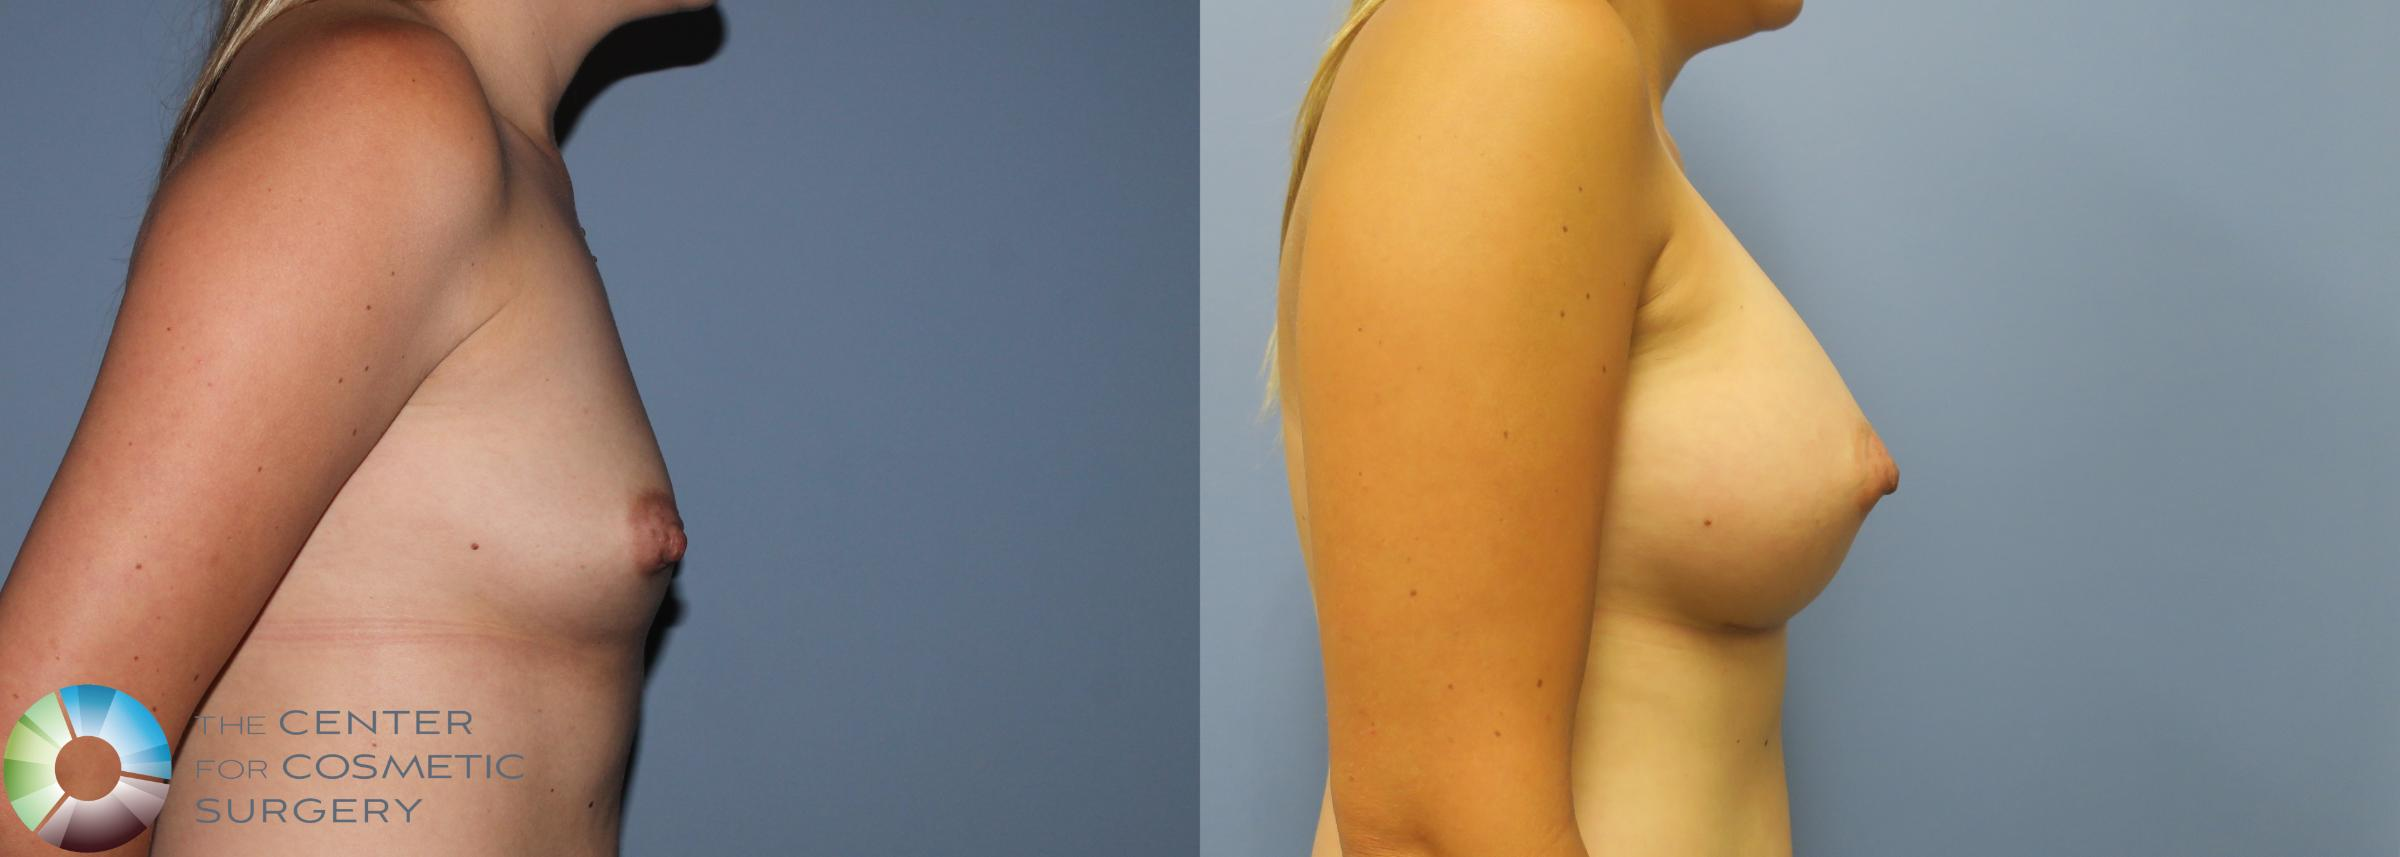 Breast Augmentation Case 762 Before & After View #3 | Golden, CO | The Center for Cosmetic Surgery